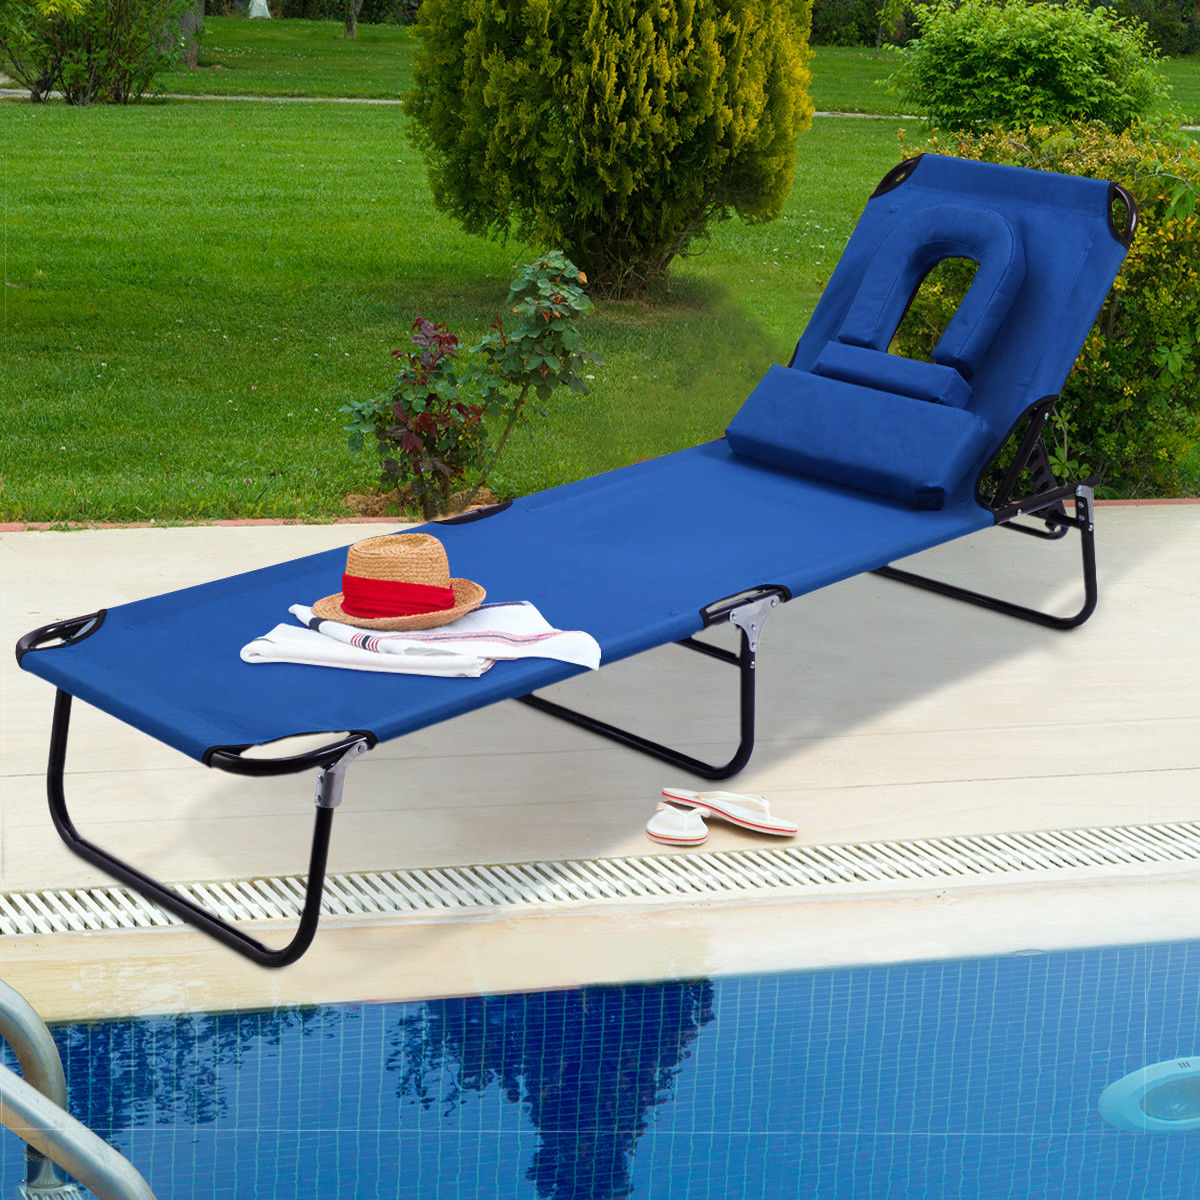 Costway Patio Foldable Chaise Lounge Chair Bed Outdoor Beach Camping Recliner Pool Yard For Well Liked Outdoor Yard Pool Recliner Folding Lounge Table Chairs (View 6 of 25)